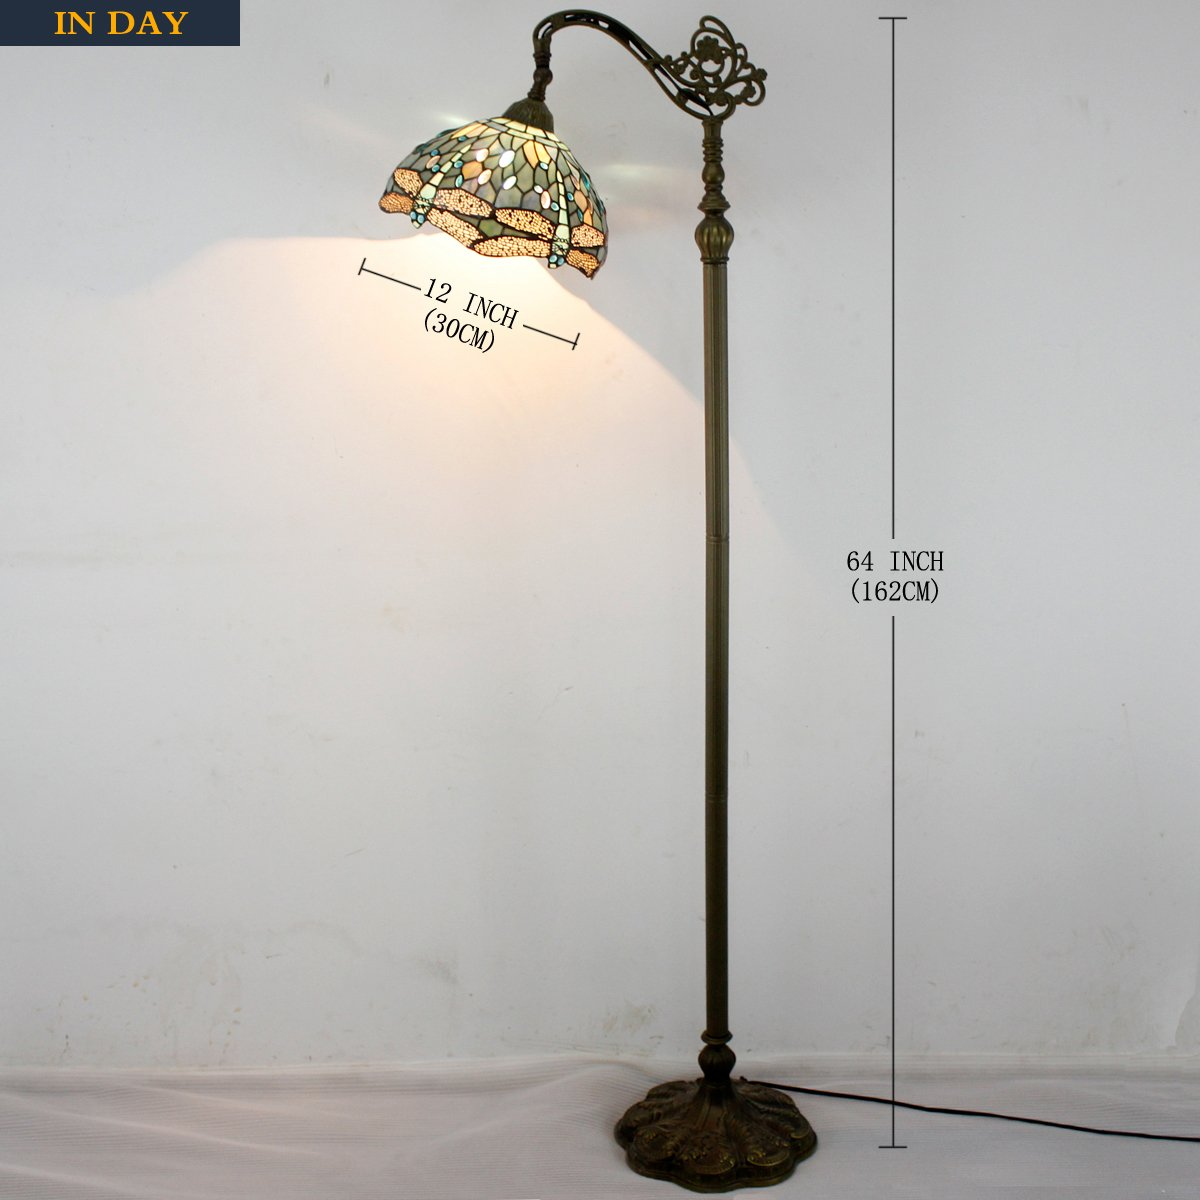 Tiffany Style Reading Floor Lamp Sea Blue Stained Glass with Crystal Bead Dragonfly Lampshade 64 Inch Tall Antique Arched Base for Bedroom Living Room Lighting Table Set Gifts S147 WERFACTORY